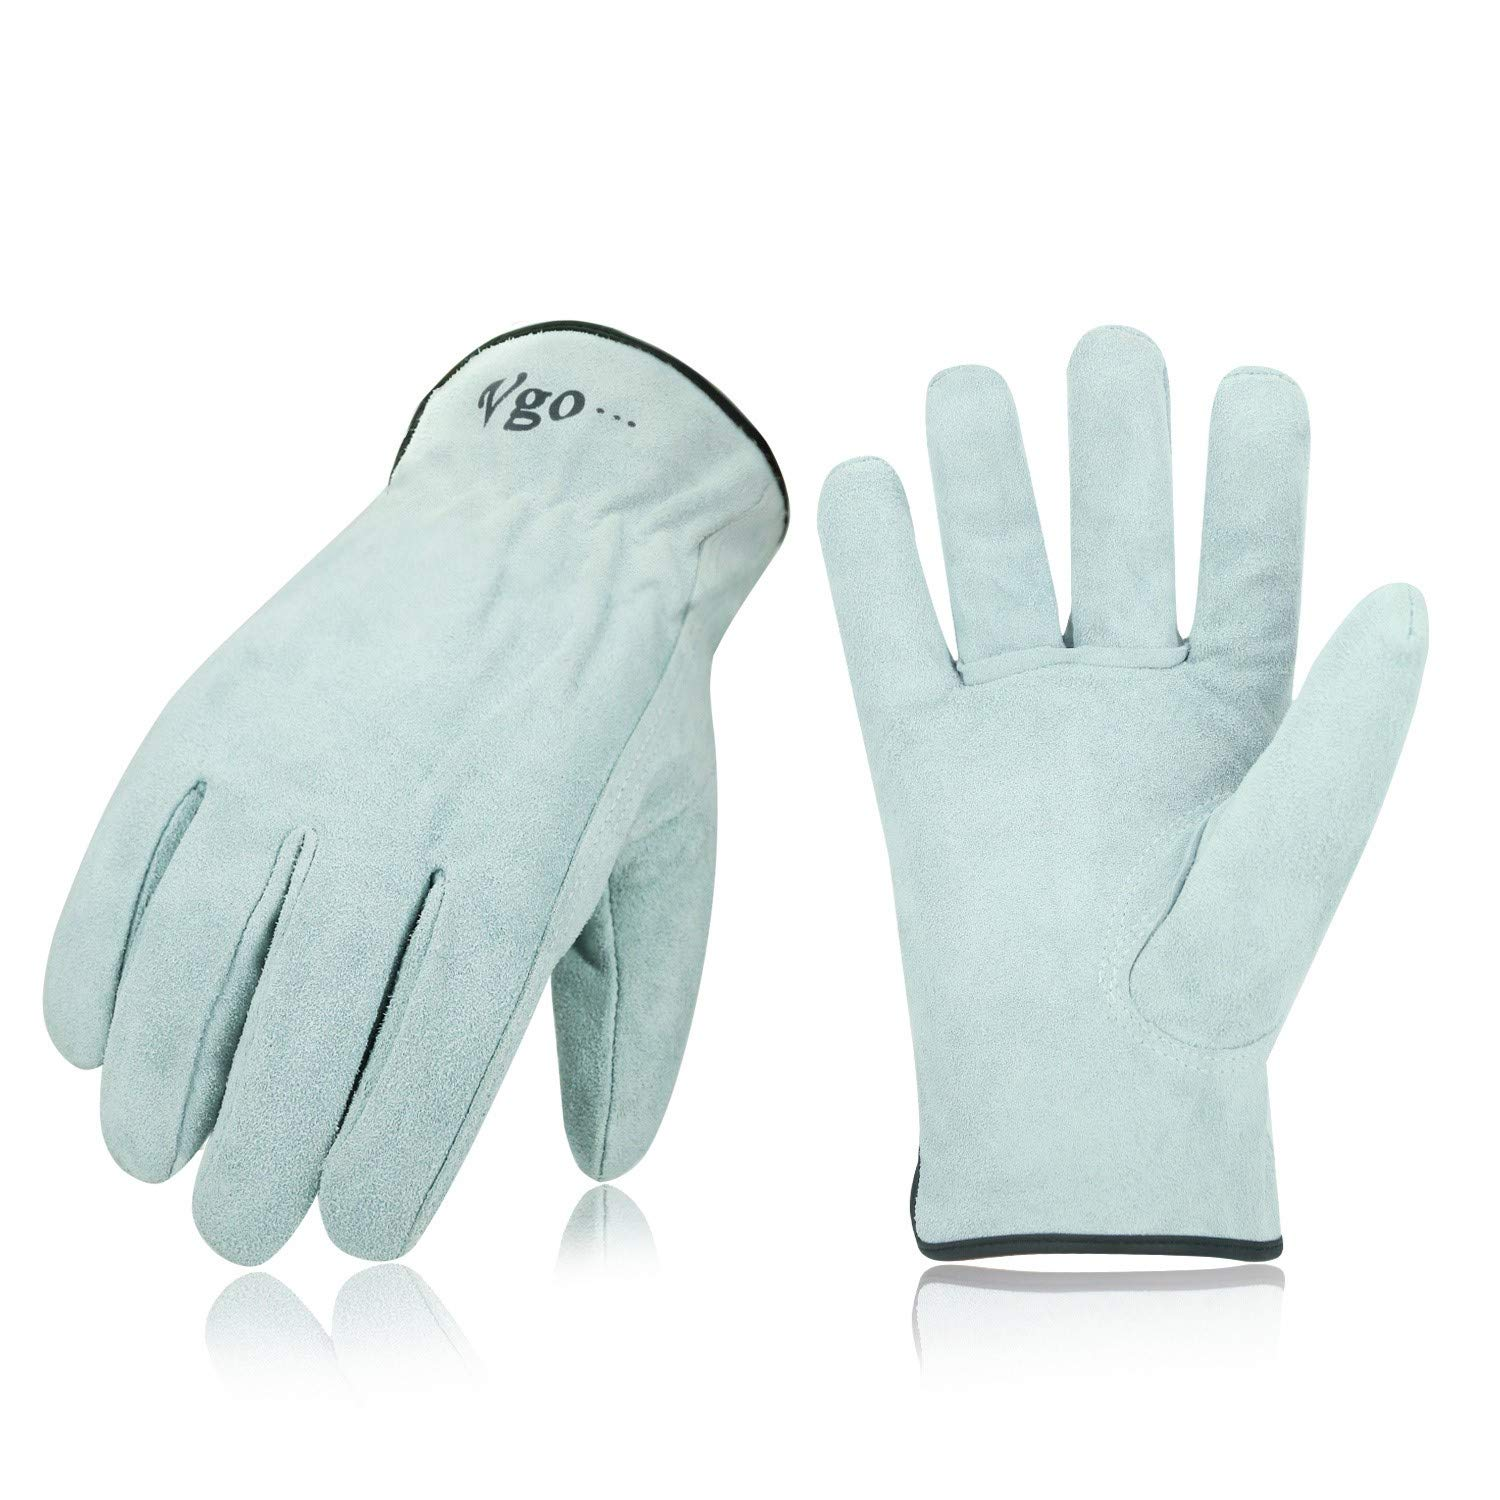 Vgo 3-Pairs Unlined Cowhide Split Leather Work and Driver Gloves, For Heavy Duty/Truck Driving/Warehouse/Gardening/Farm(Size L,Raw White,CB9501)